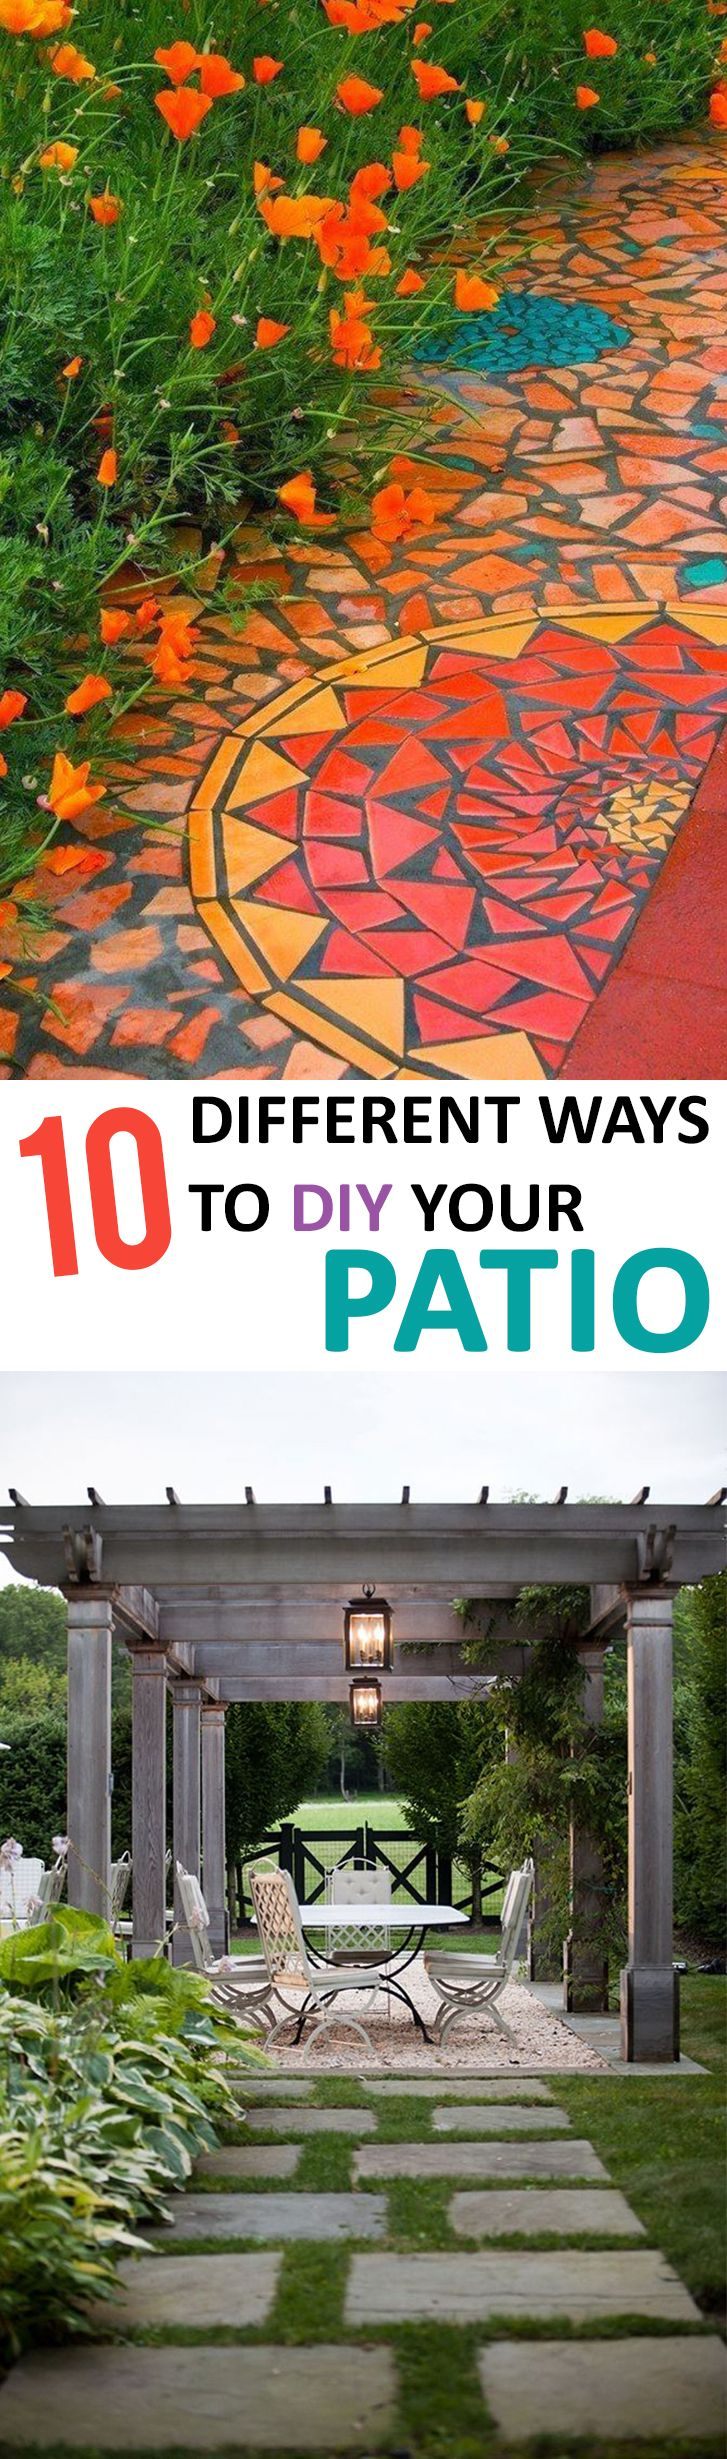 24 Awesome DIY Patio Projects